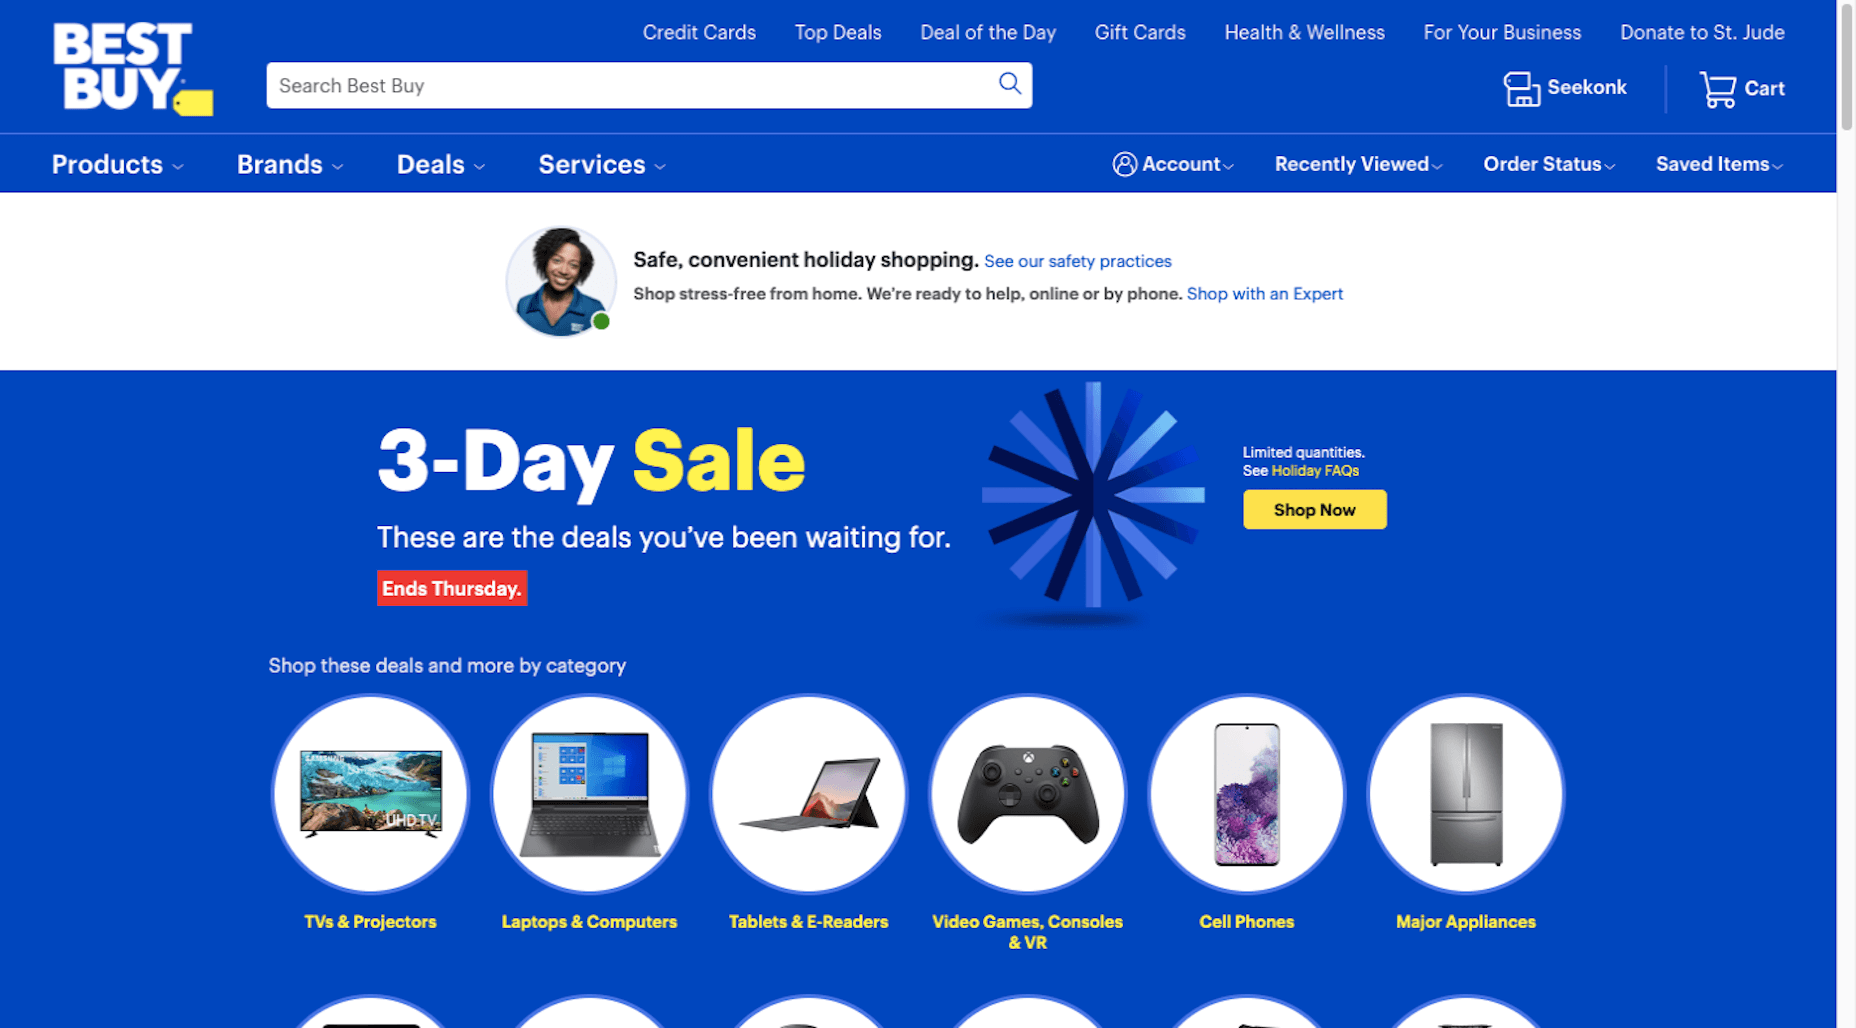 Best Buy invites customers to shop with an expert to make things go more smoothly